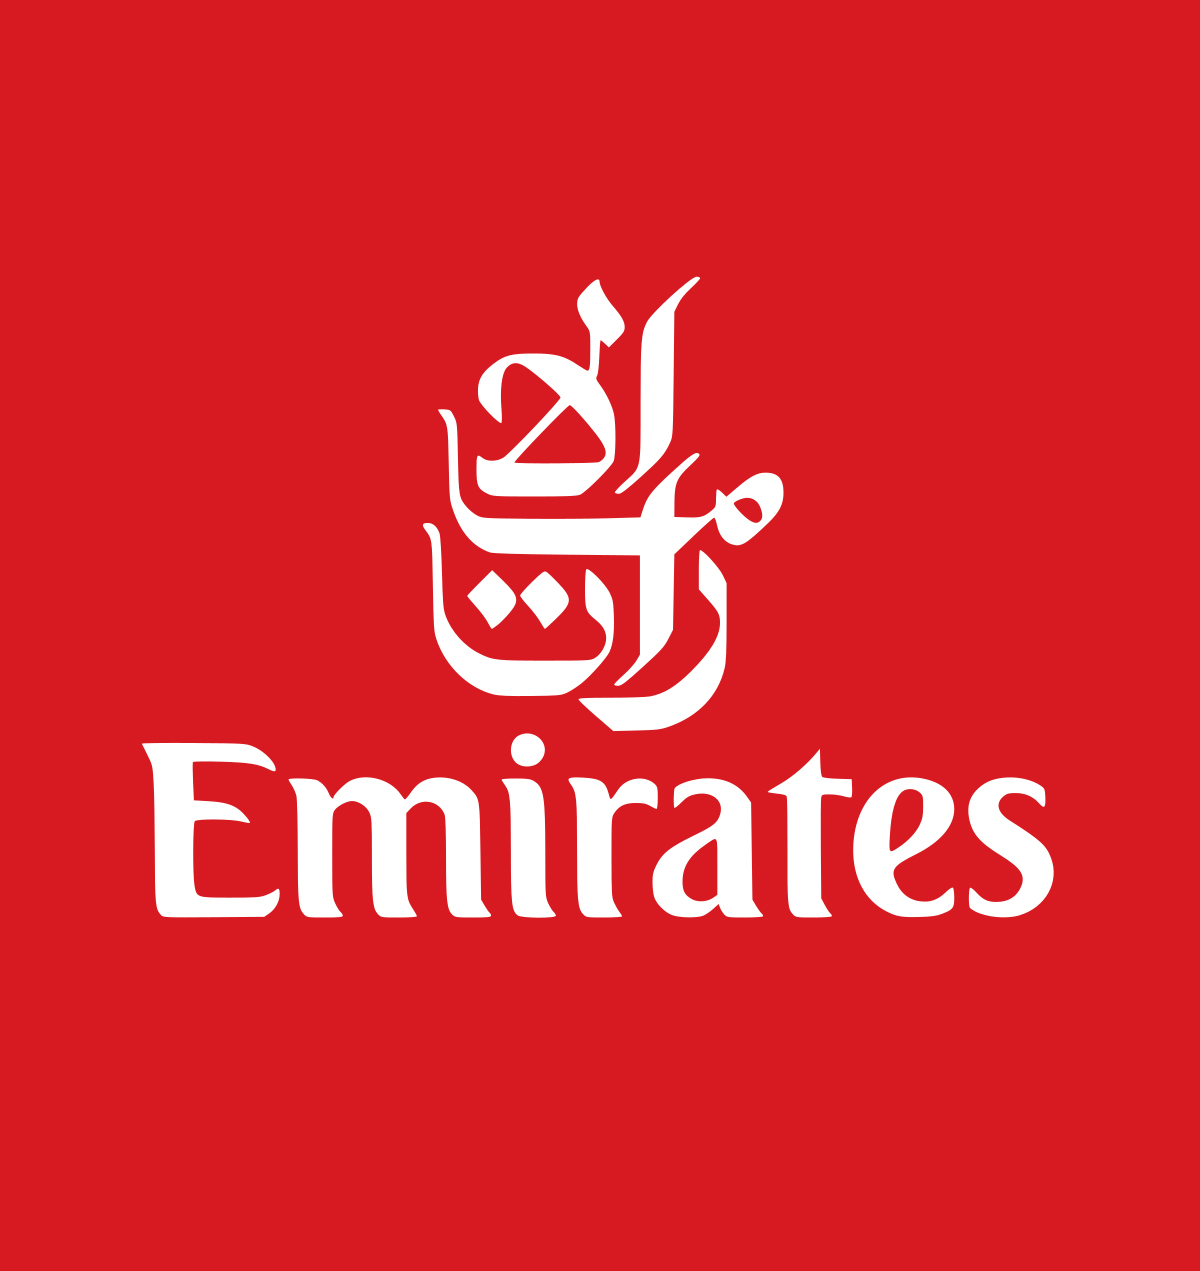 Sponsored by Emirates